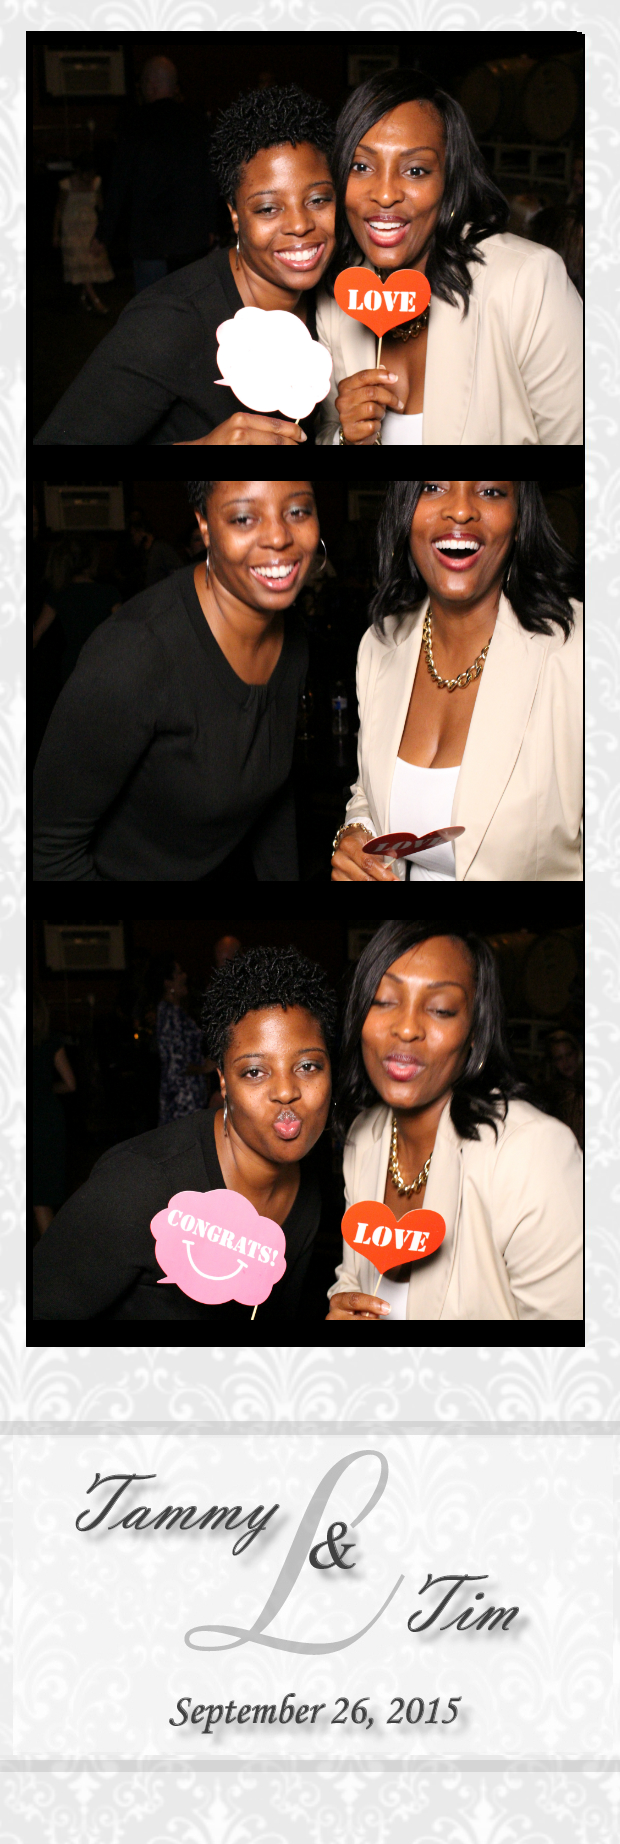 Guest House Events Photo Booth Strips T&T (27).jpg